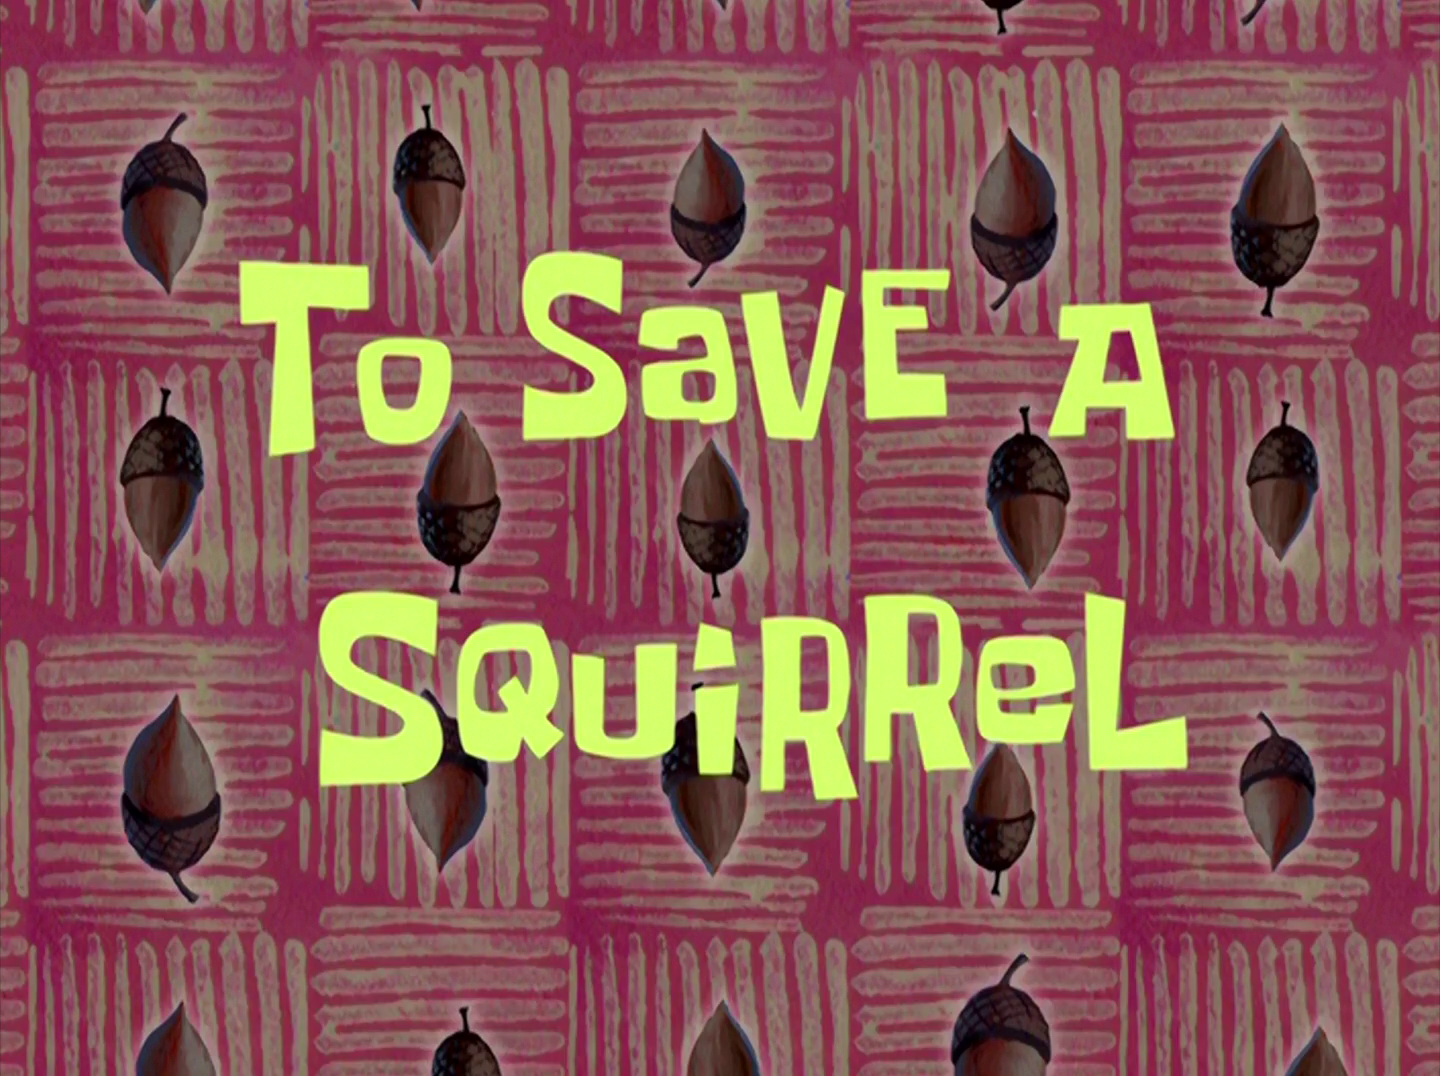 To Save a Squirrel/transcript